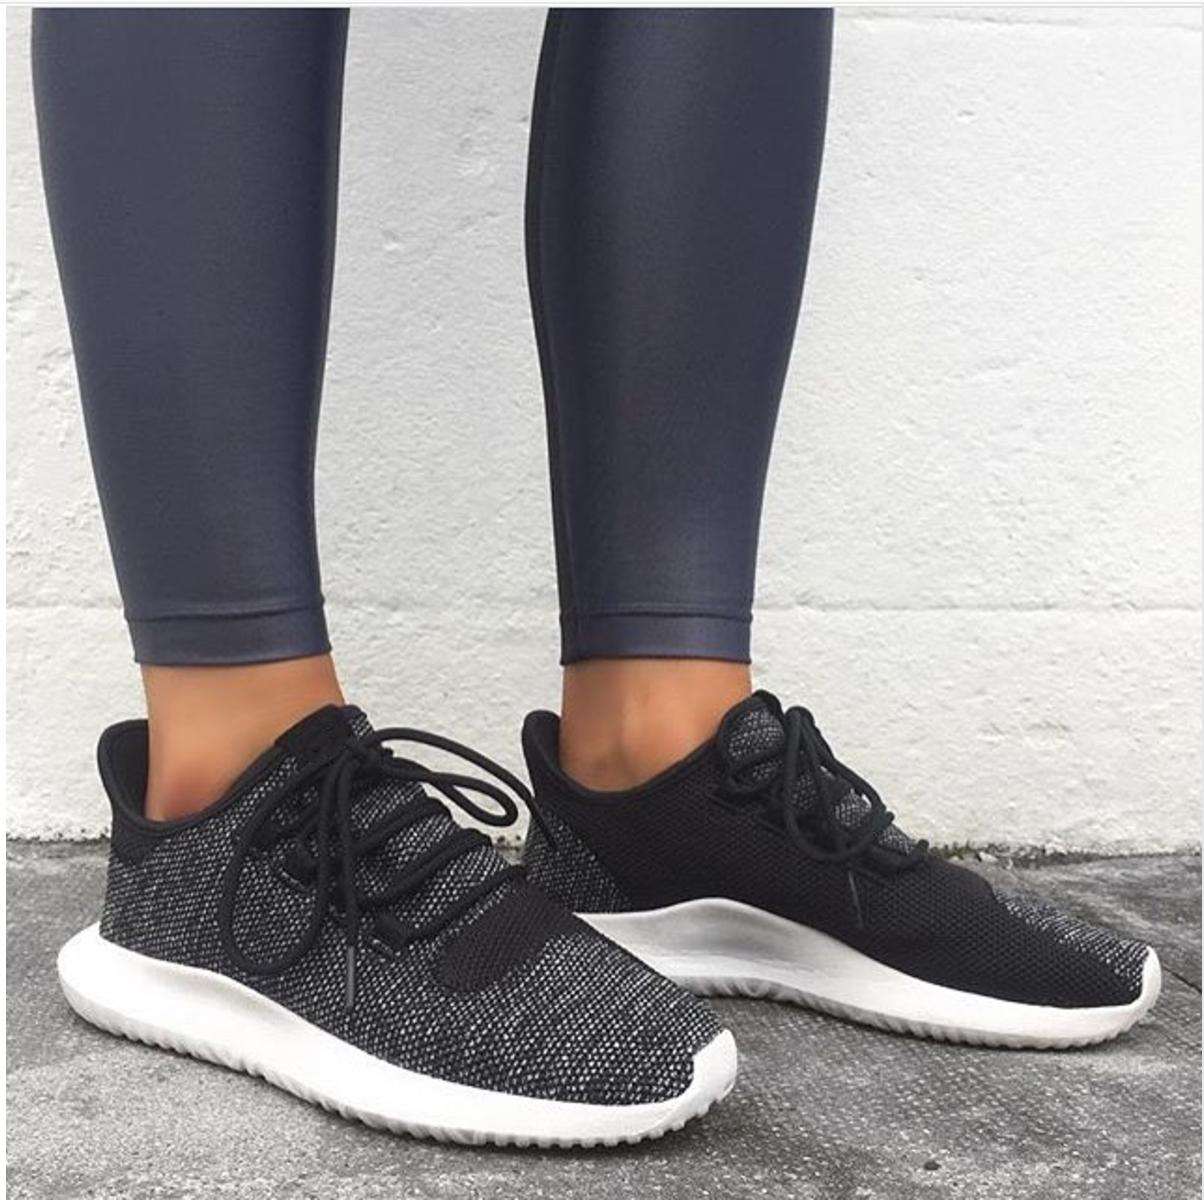 HOT Women's Fashion Sneaker Style Running Athletic Shoes Tub